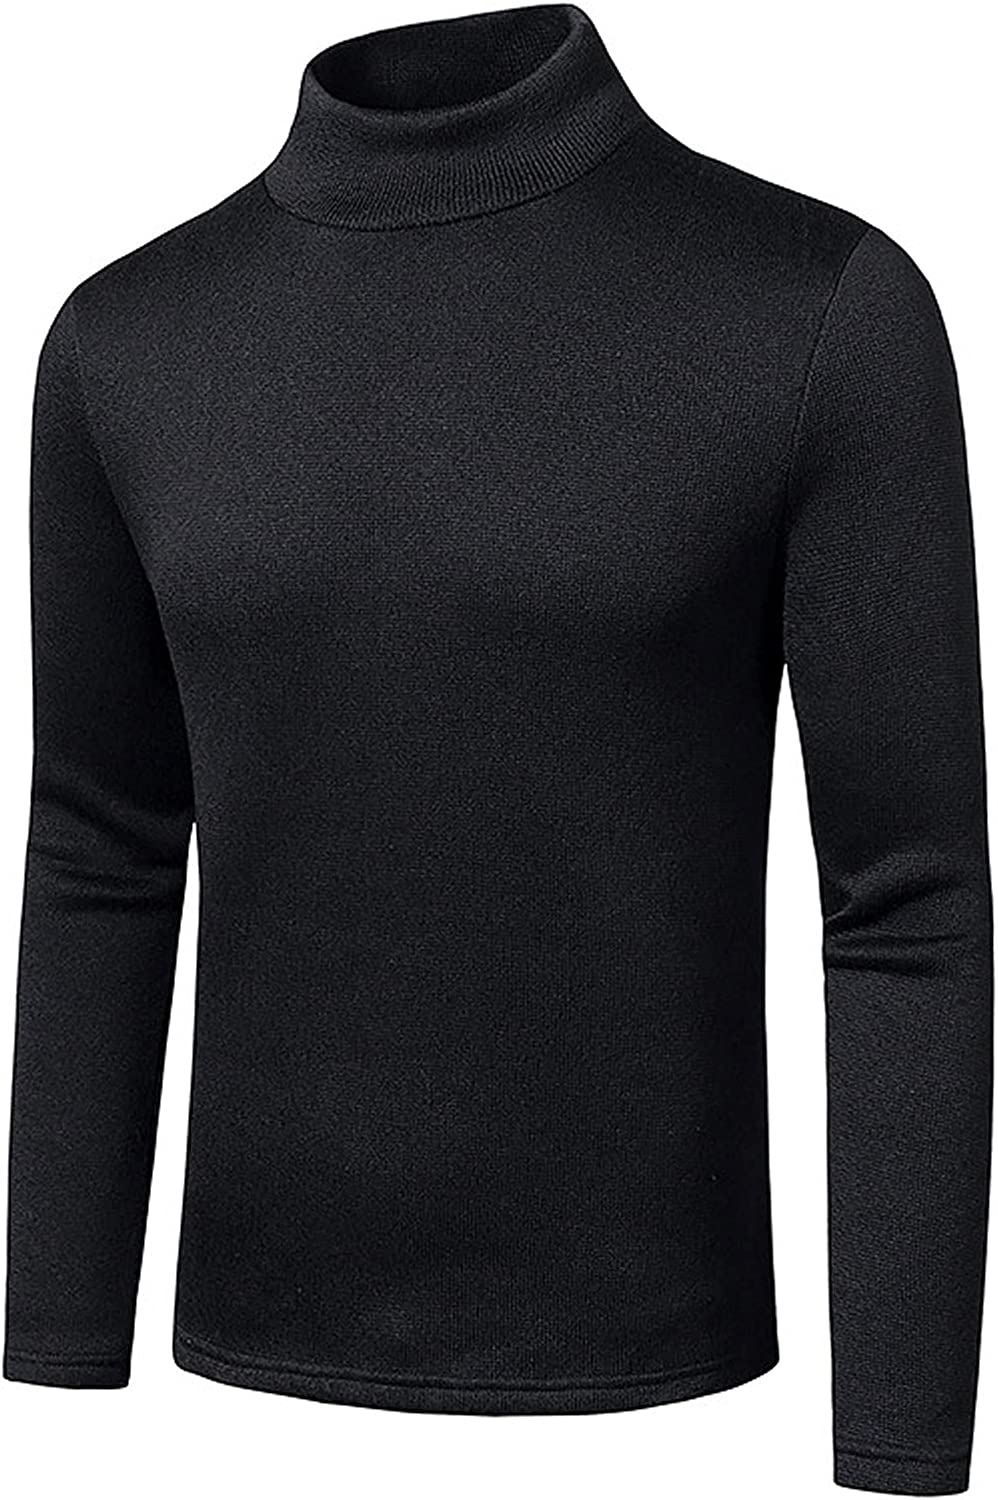 Men's Warm Cozy Casual Slim Basic Knitted Warm Half High Neck Pullover Sweaters